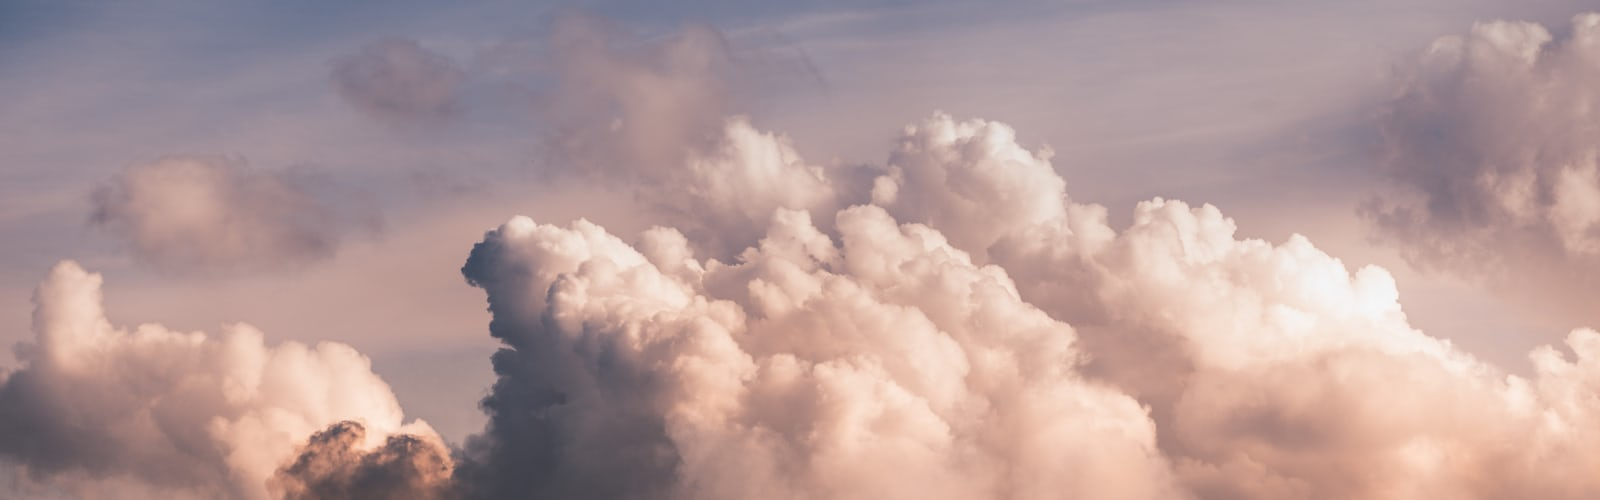 wowza | 34 best free wowza, outdoor, cloud and grey photos on Unsplash